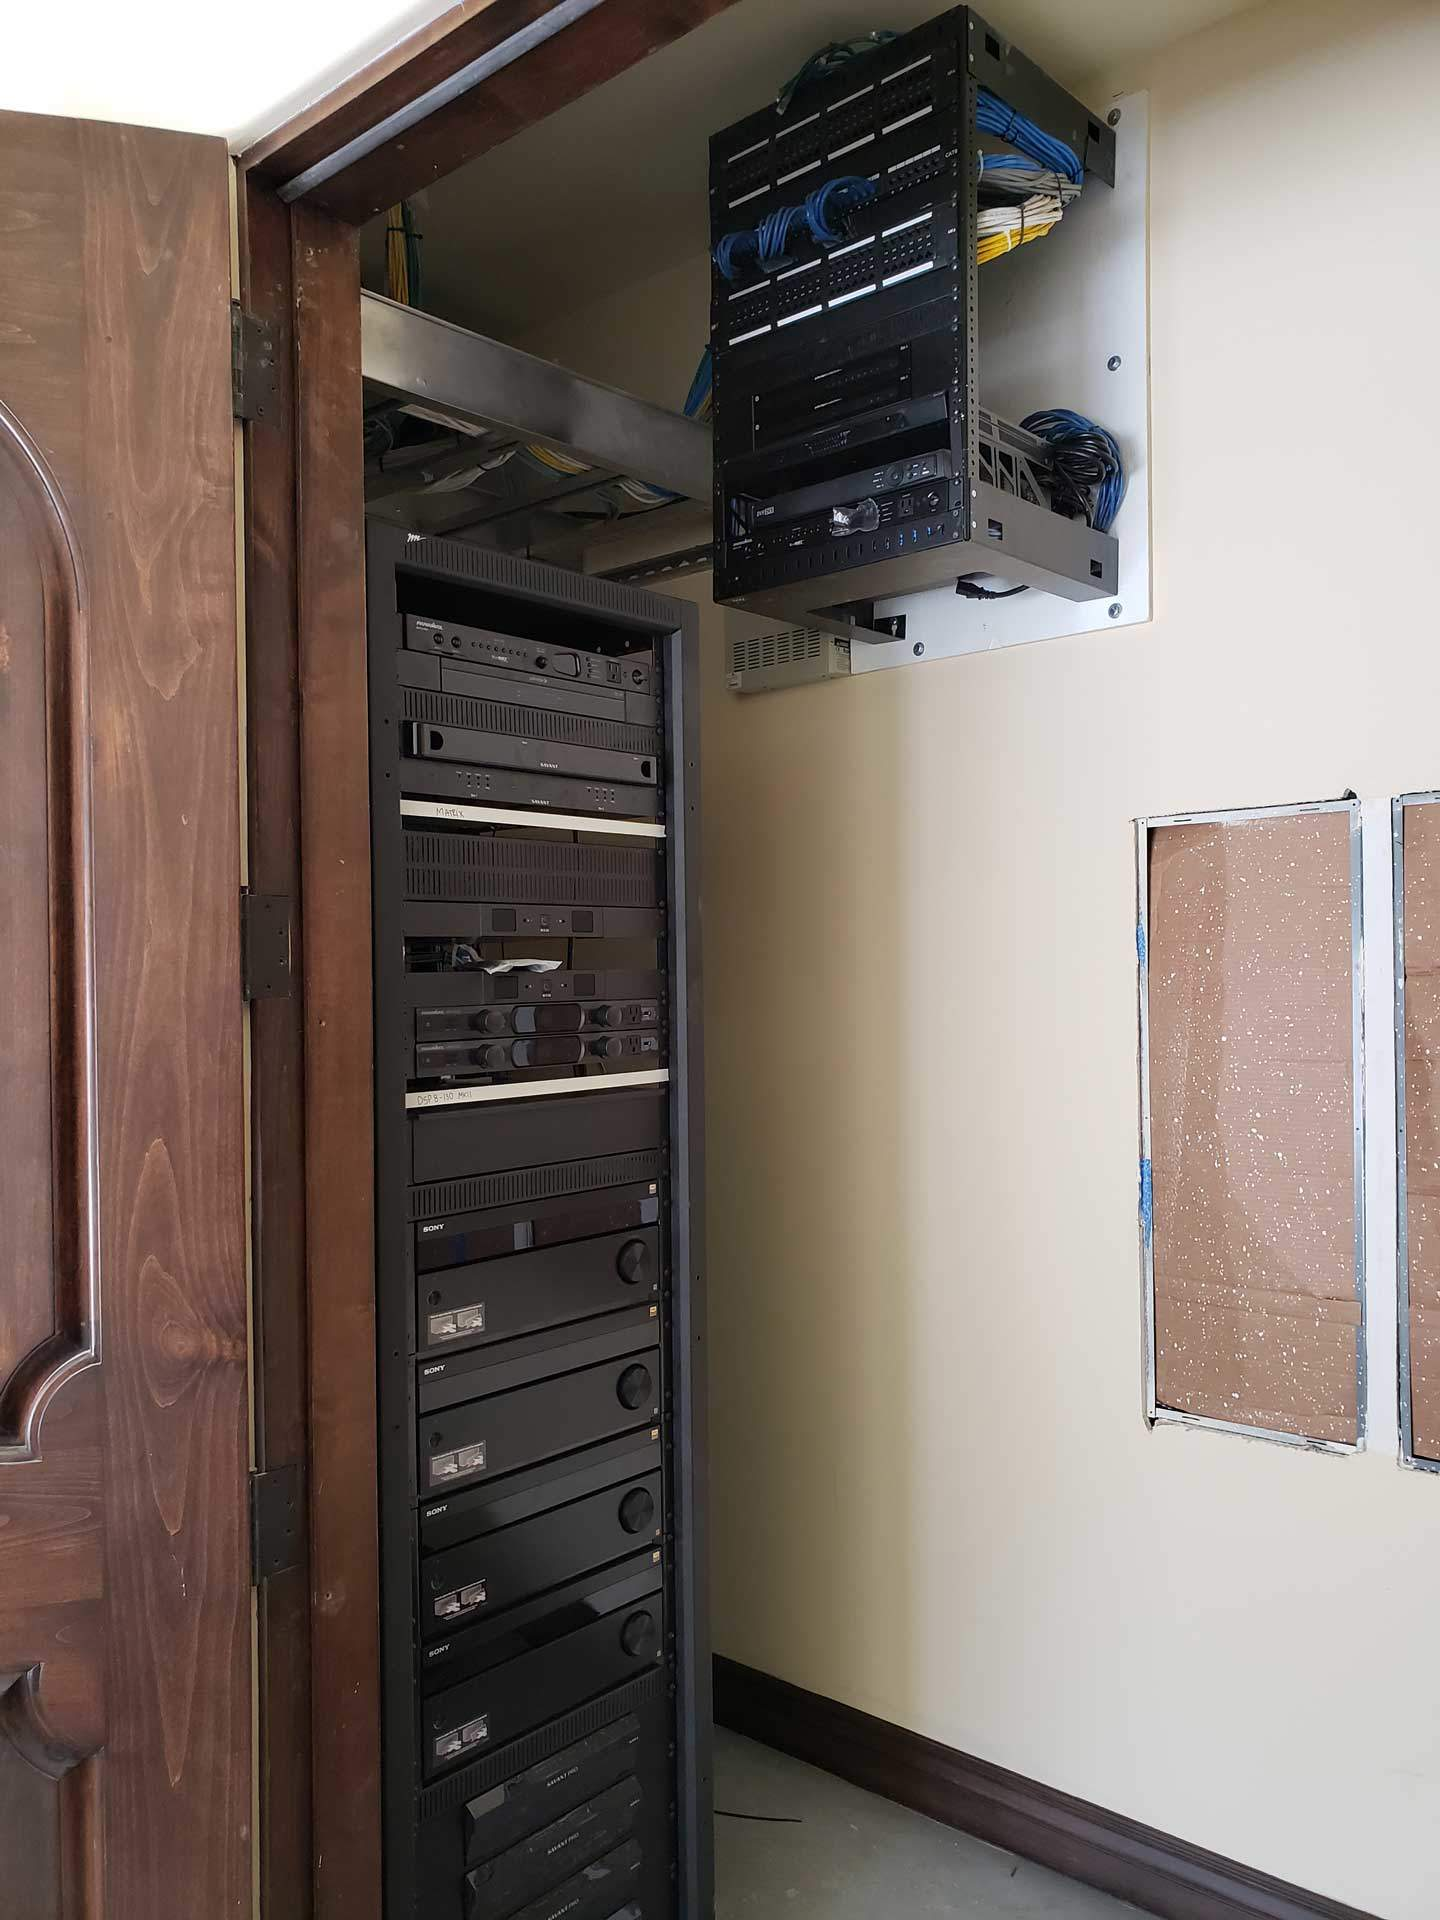 equipment-rack-and-network-small-rack